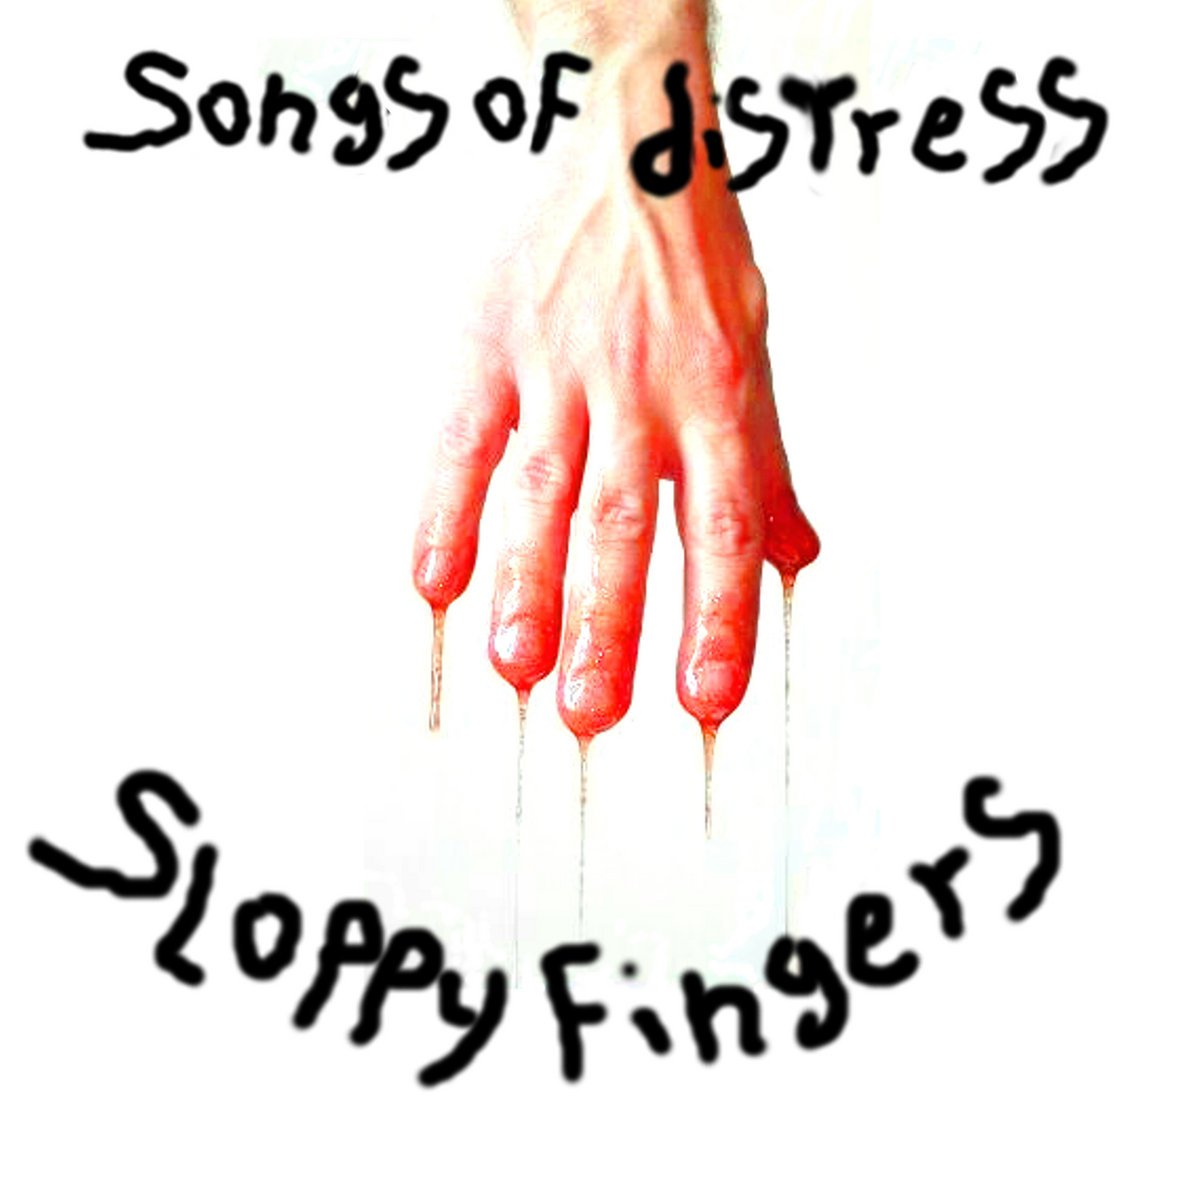 My Girlfriend Is A Squatter From Songs Of Distress By Sloppy Fingers